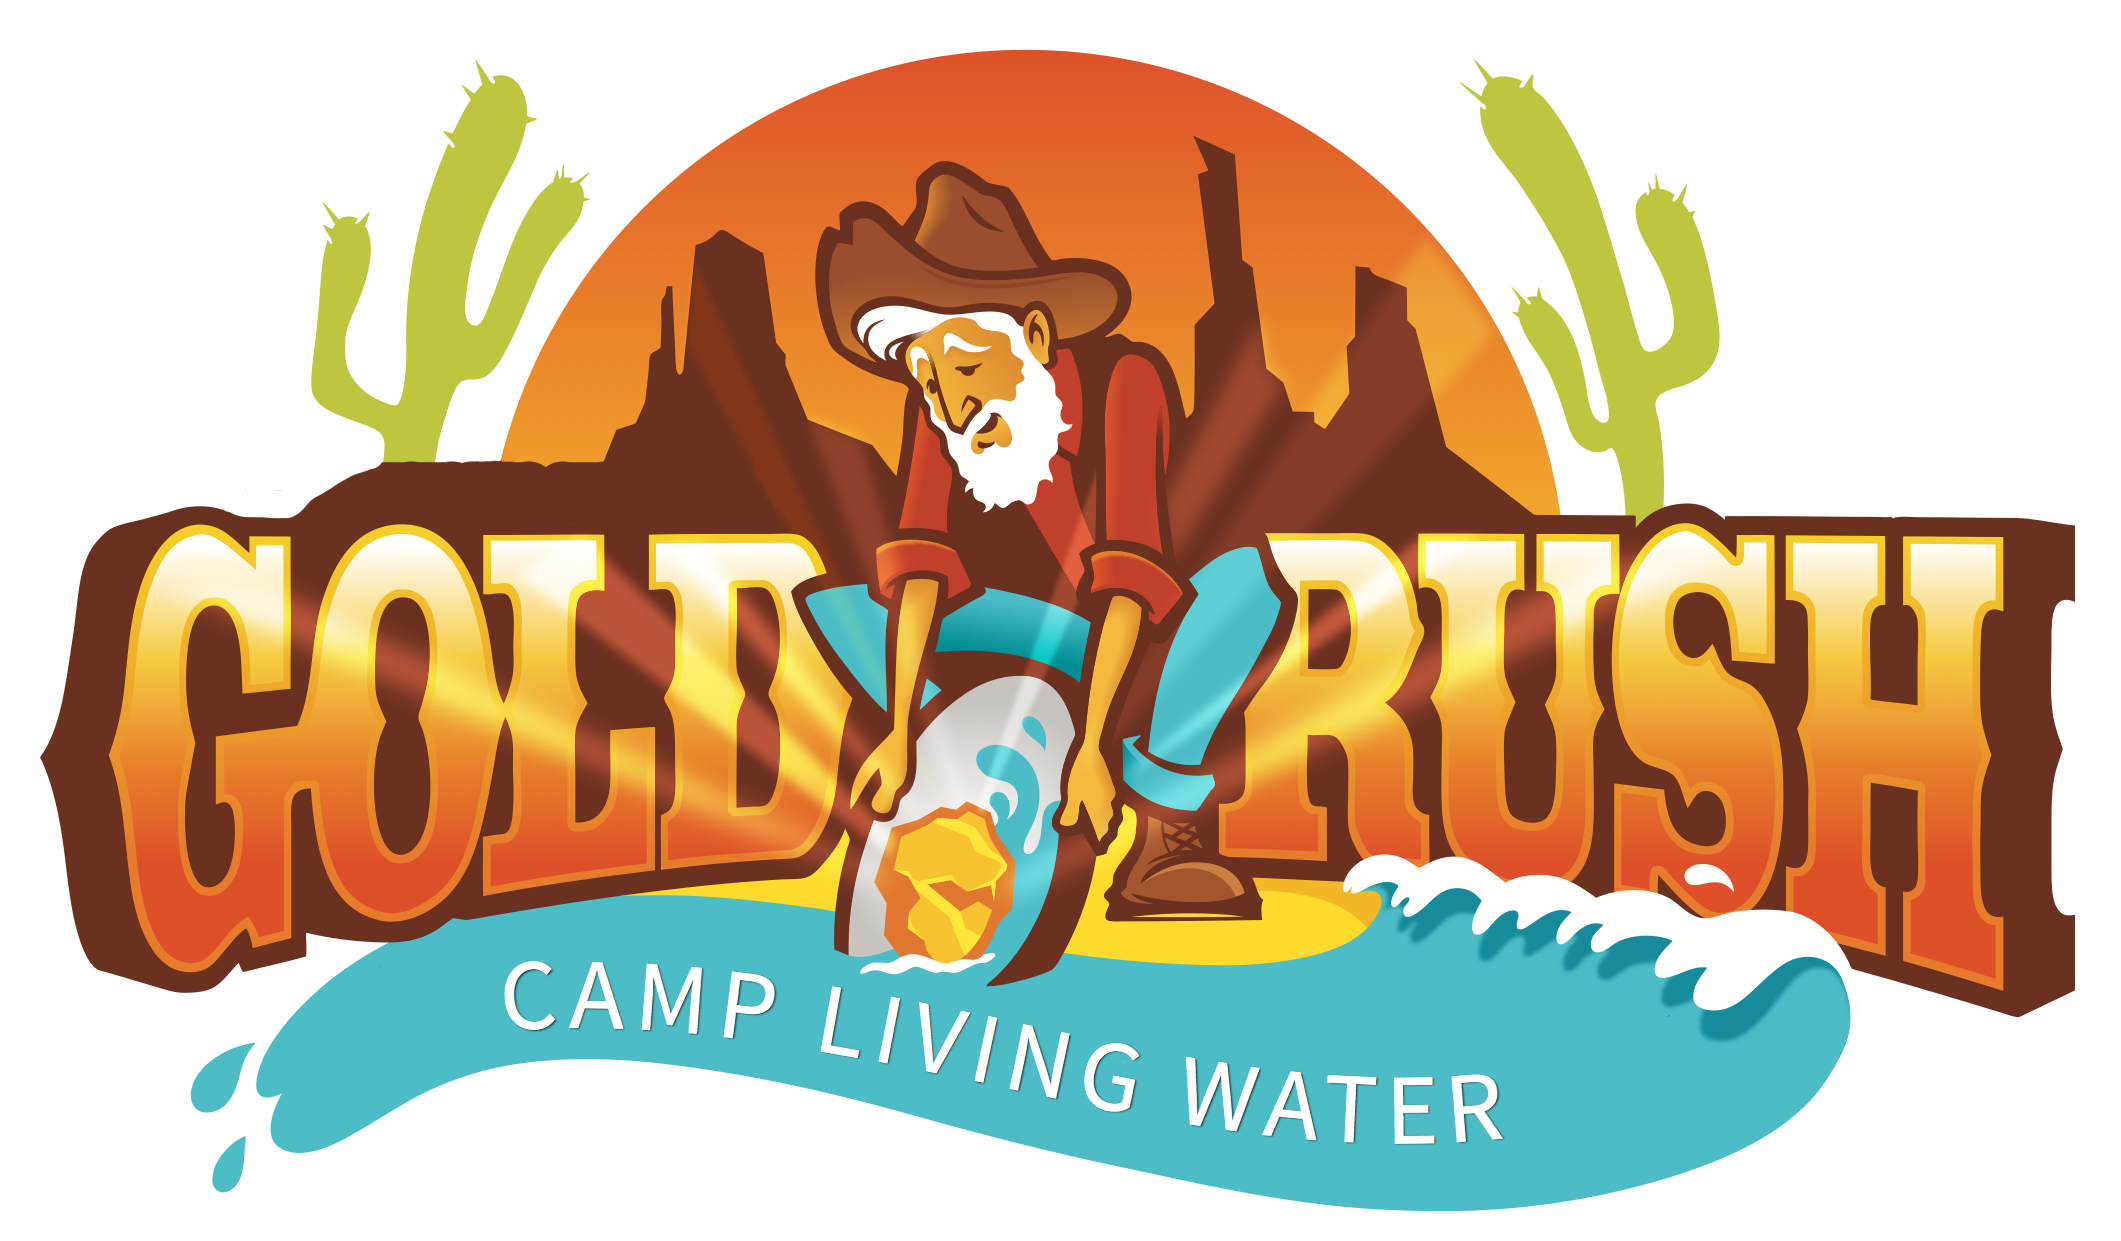 CAMP LIVING WATER THEME - 2017